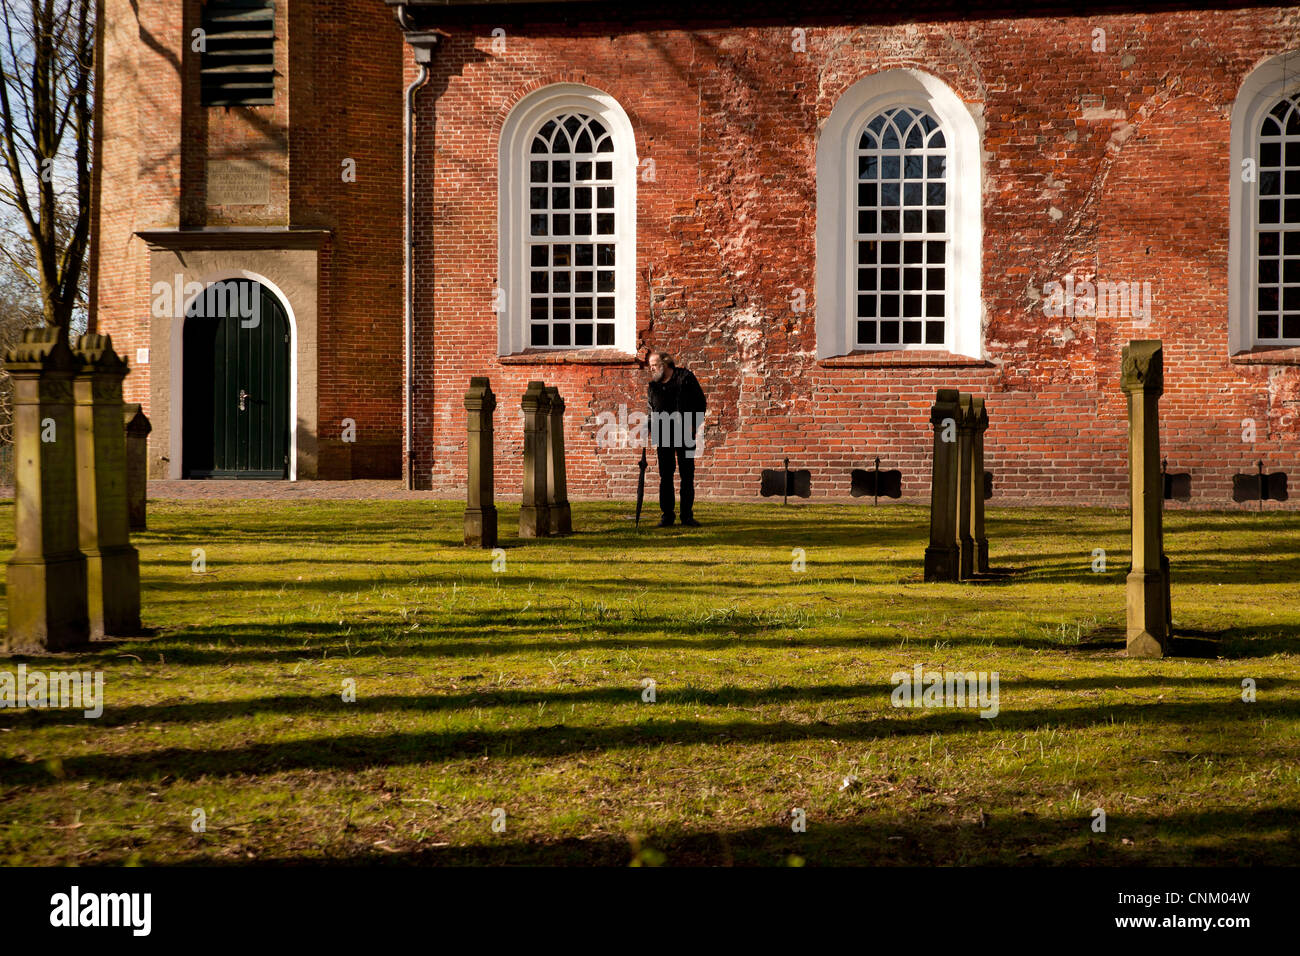 church Friedenskirche and cemetery in Leer , East Frisia, Lower Saxony, Germany - Stock Image